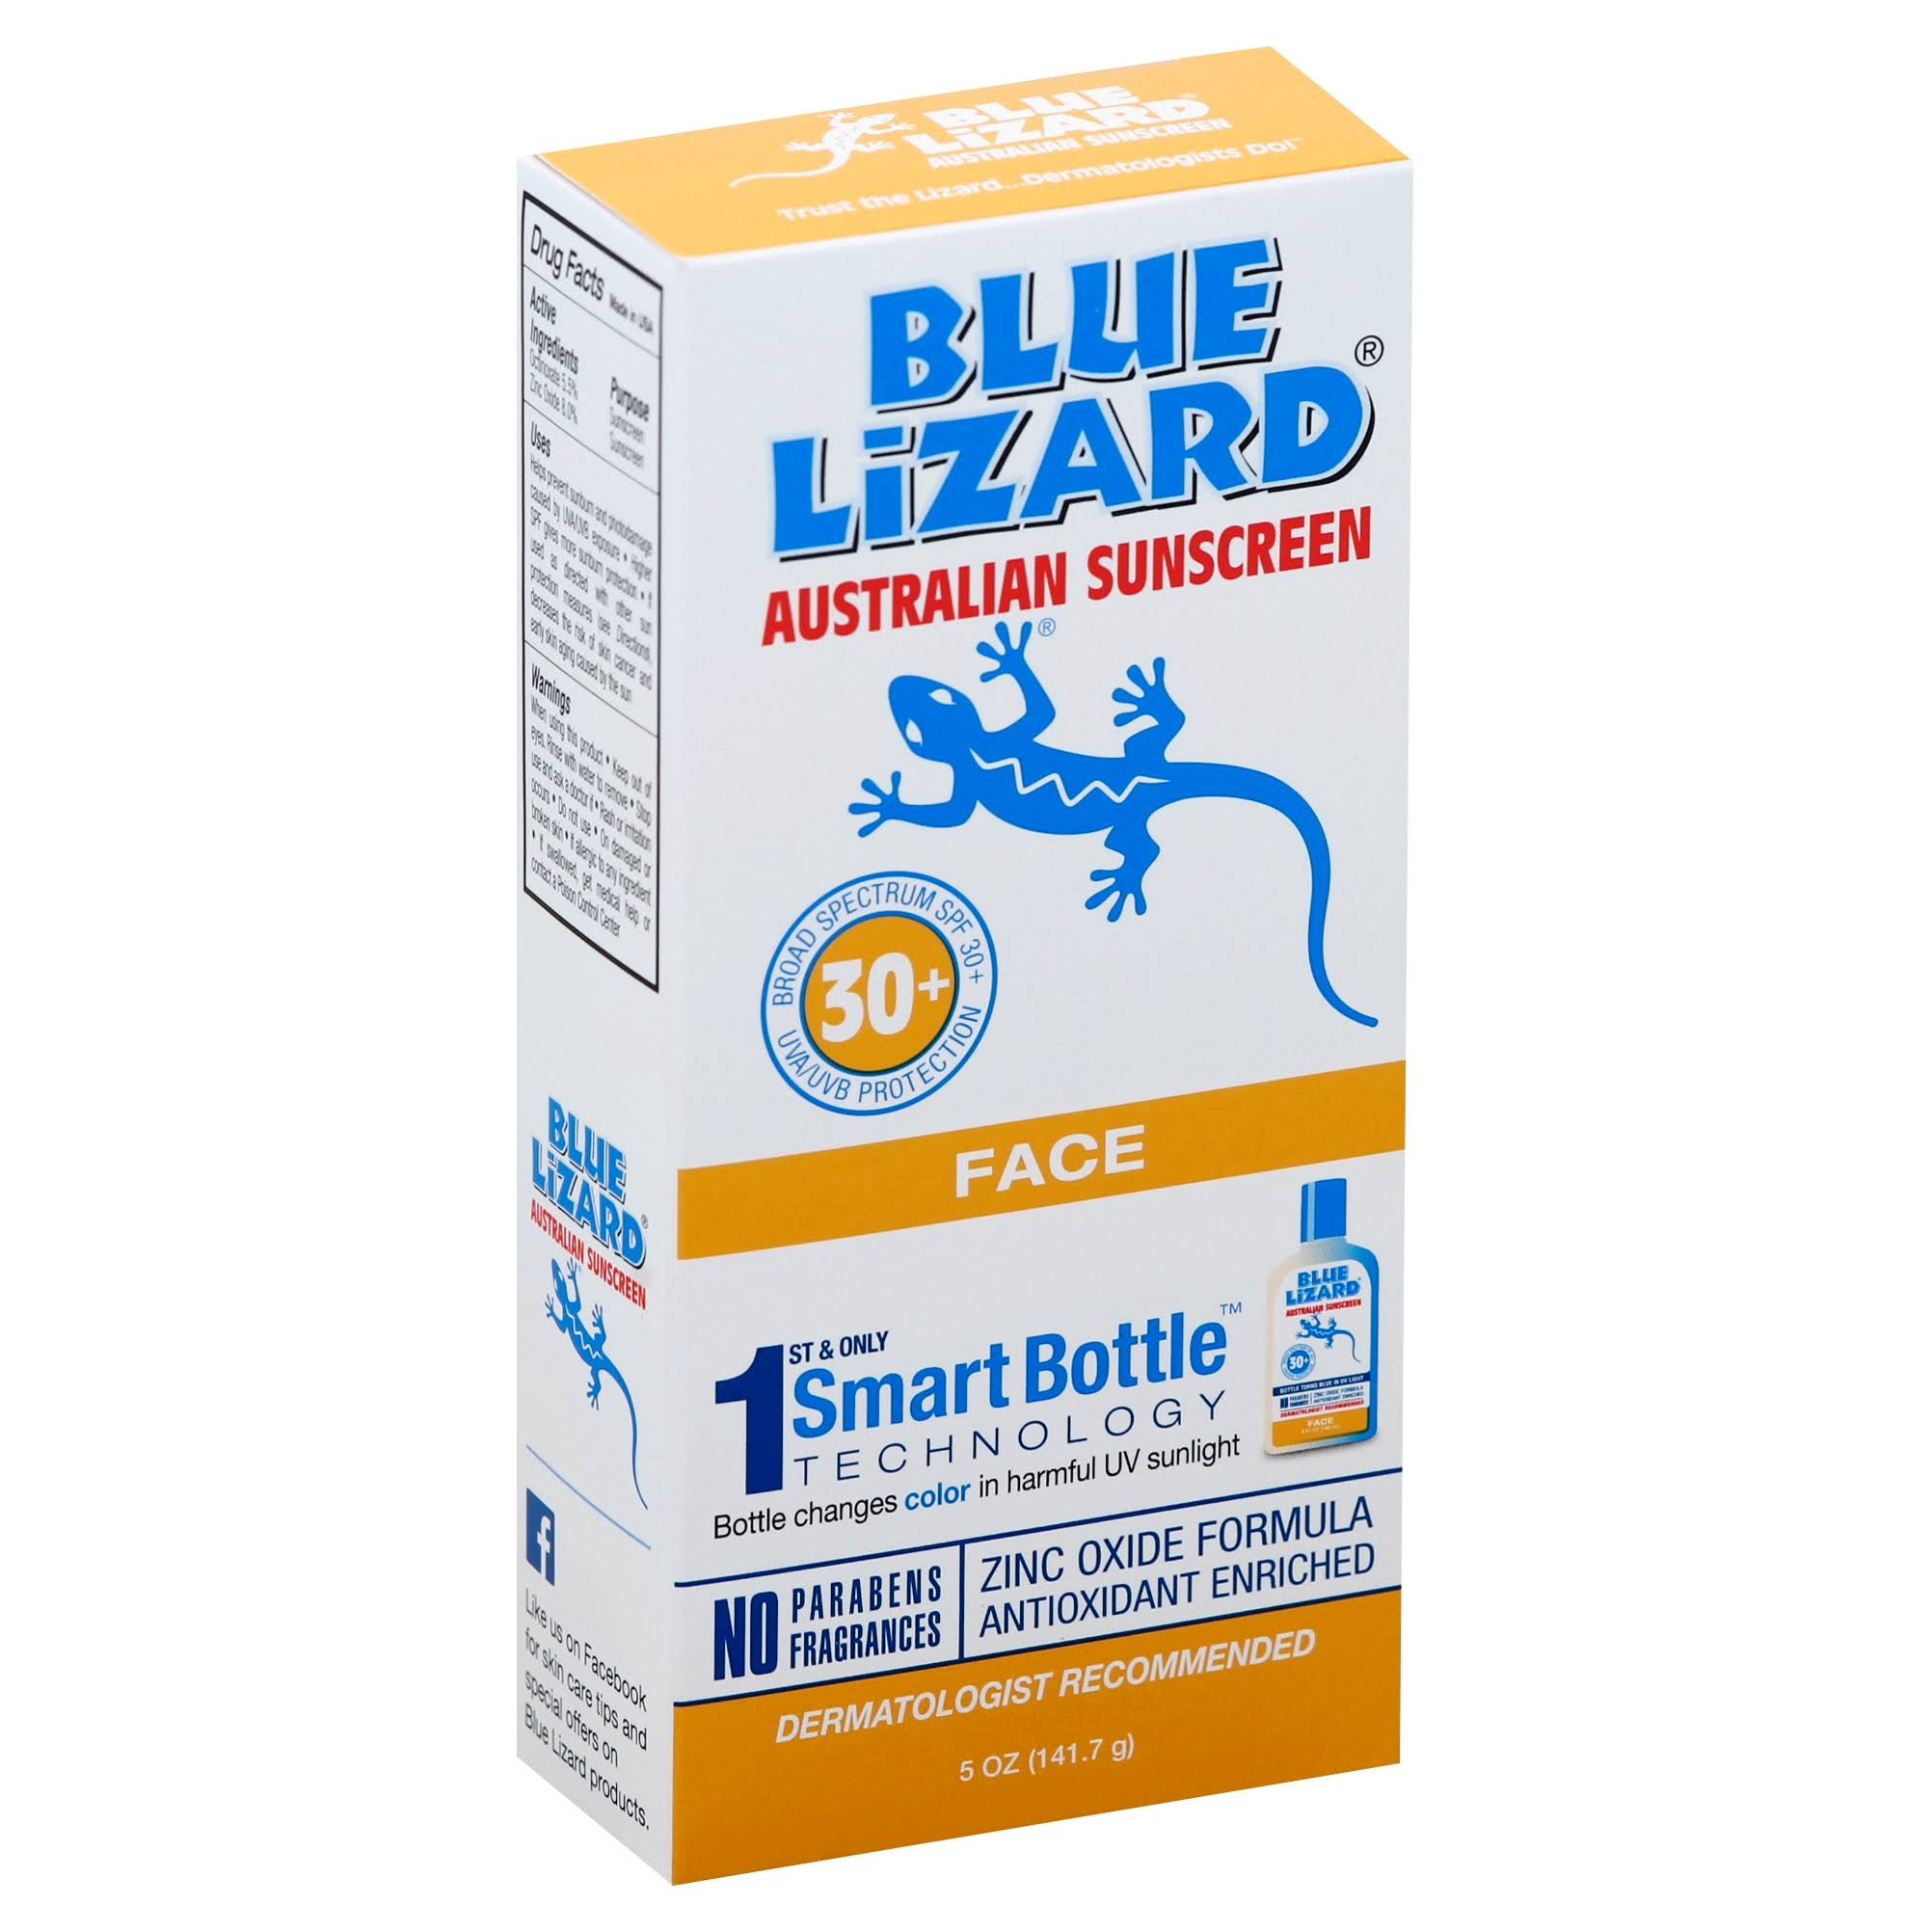 Blue Lizard Face Sunscreen - SPF 30+, 5oz